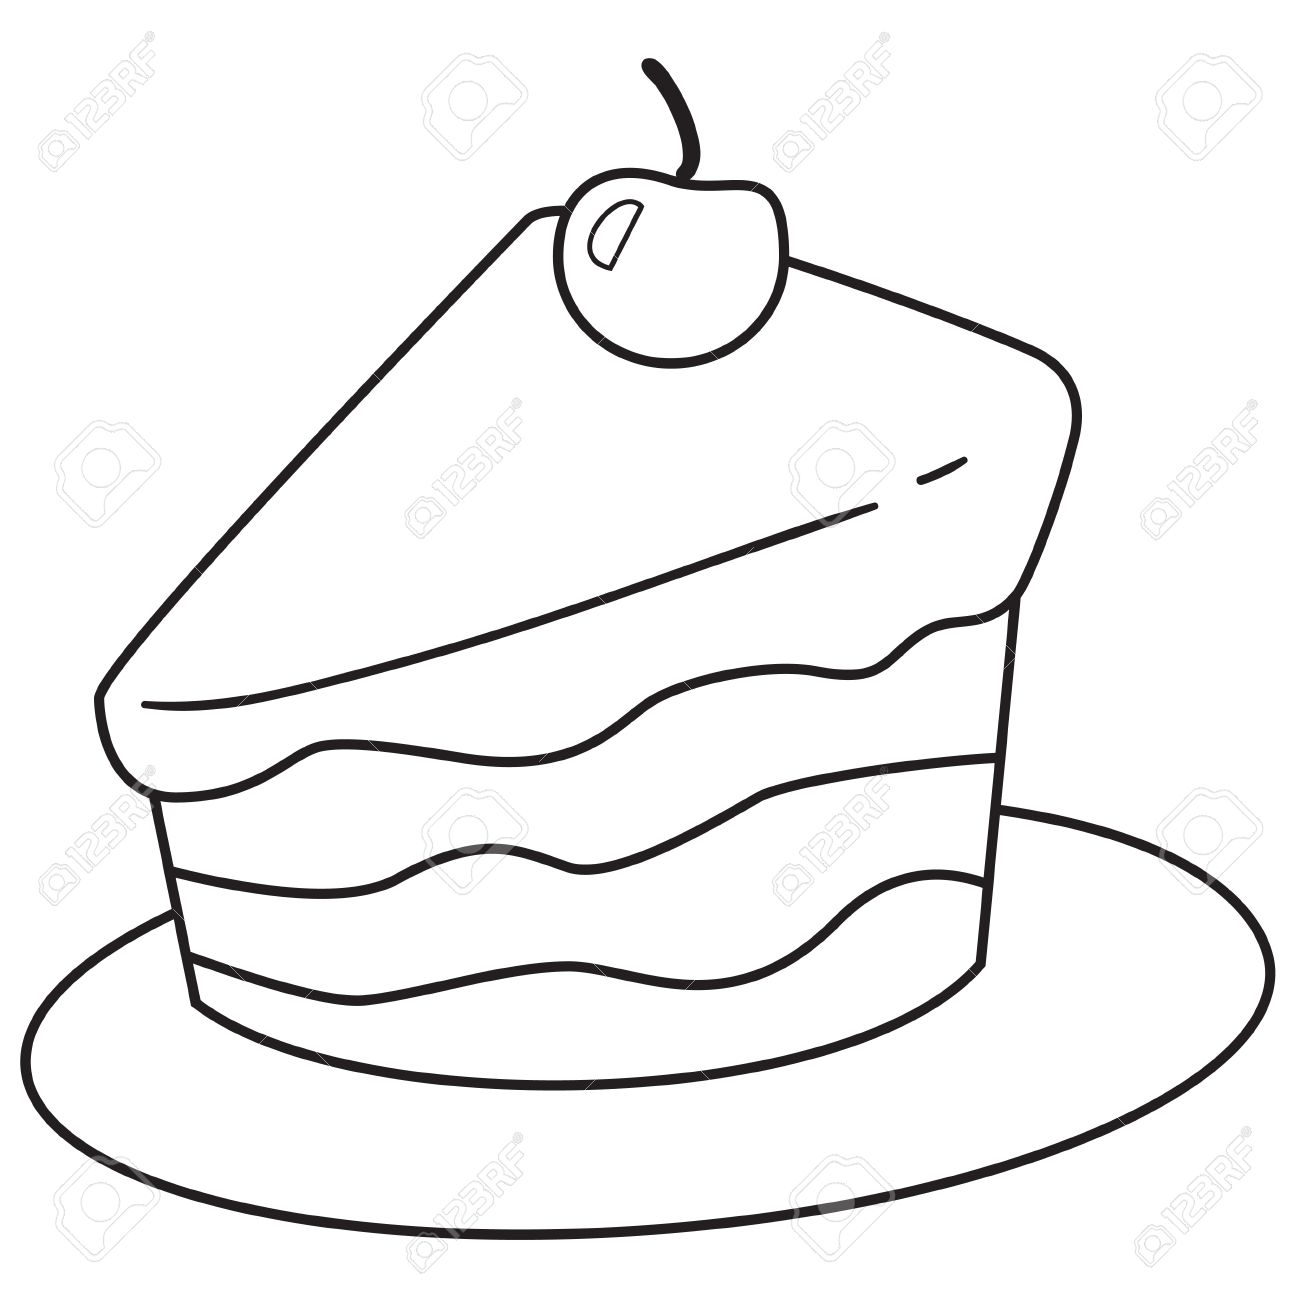 1300x1300 Vector Illustration Of Cake Slice In Black And White Outlined